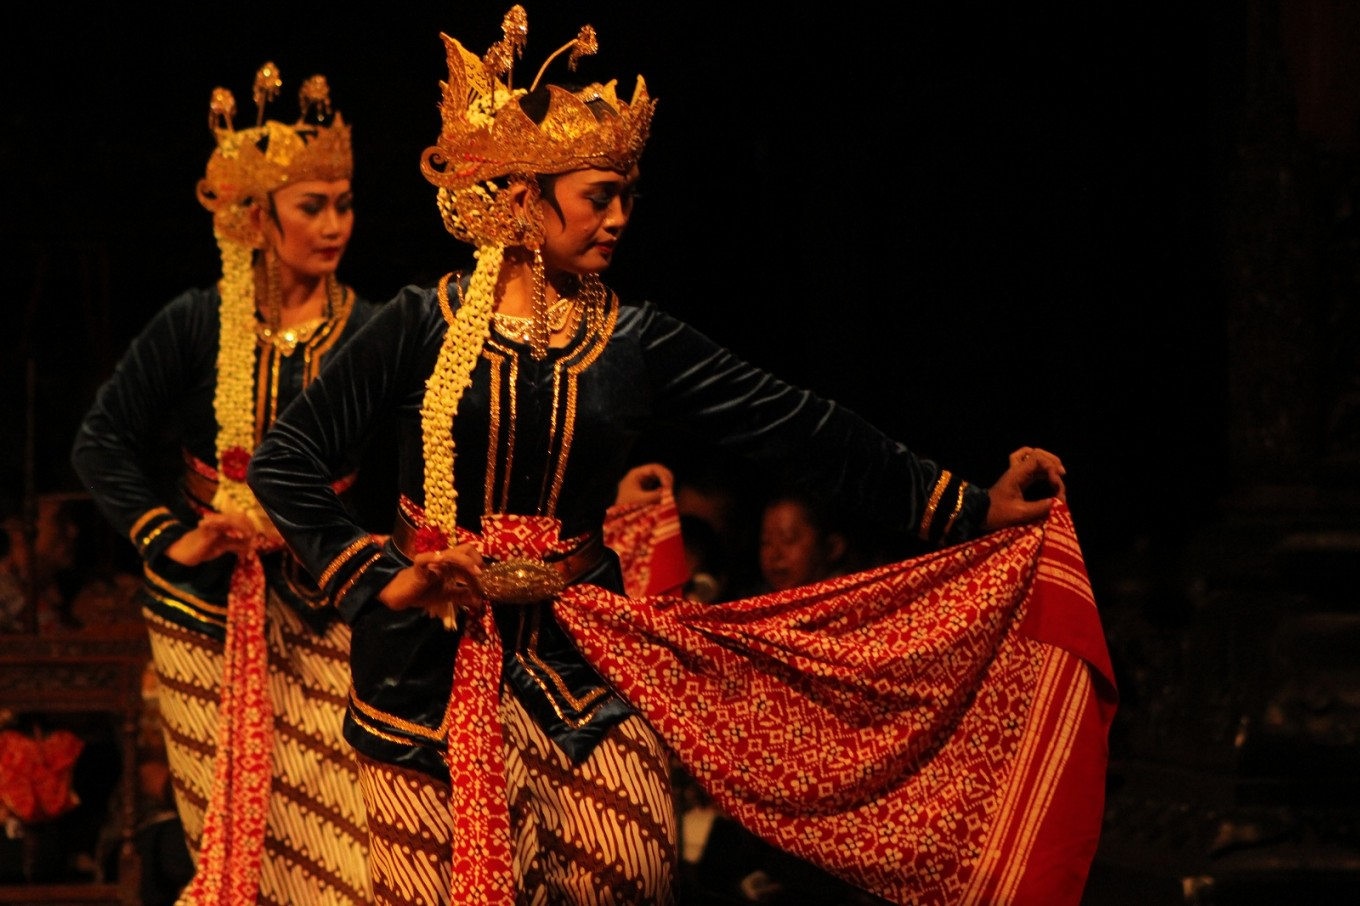 A performance by dancers from Suryo Sumirat dance studio in Surakarta, Central Java.